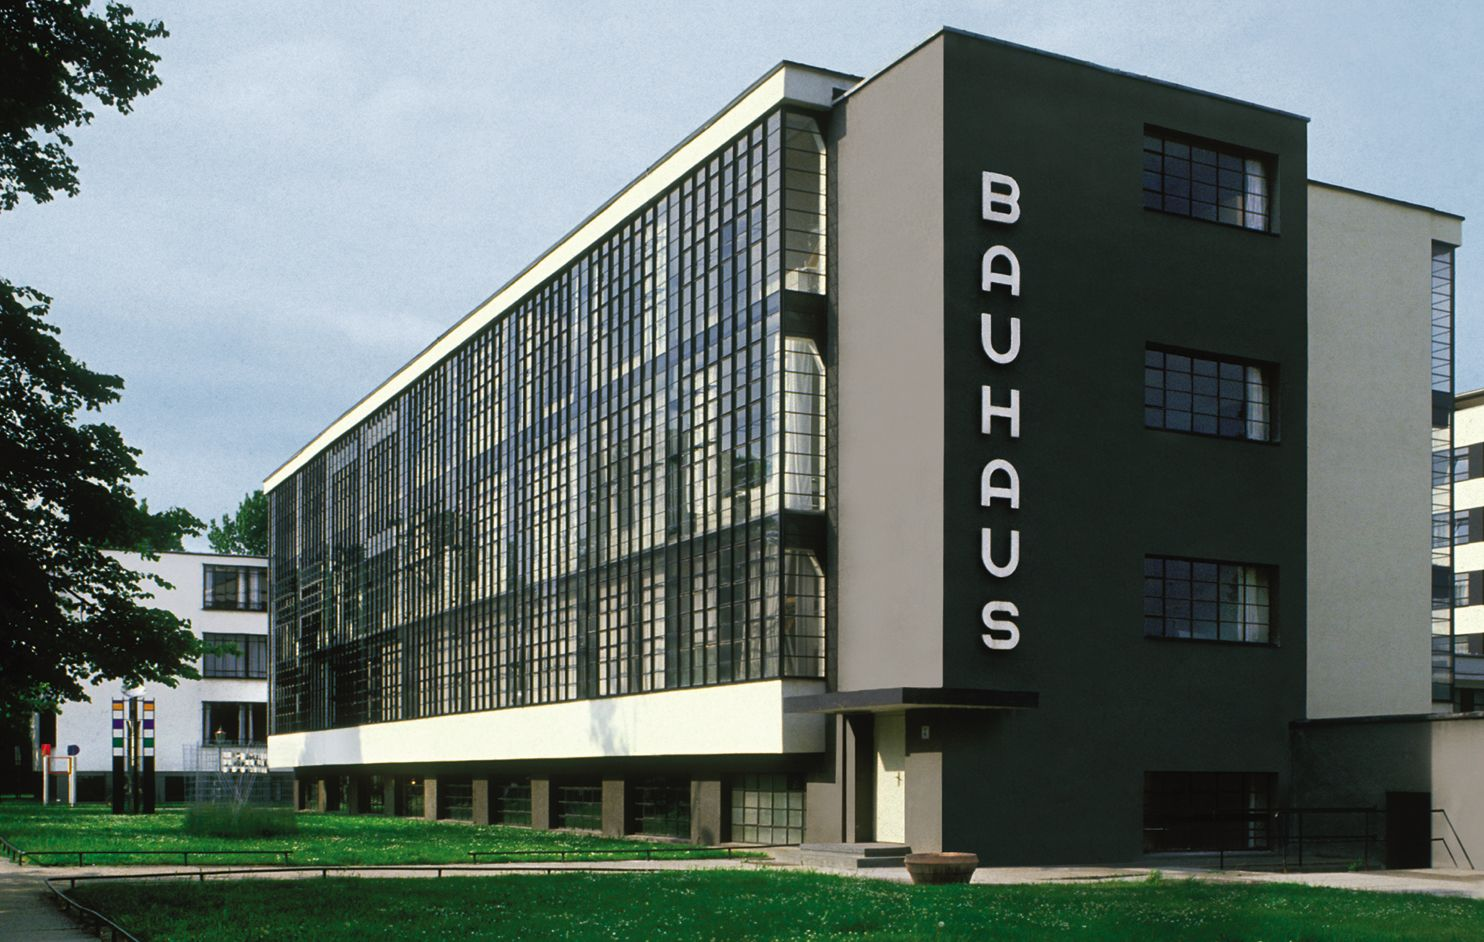 a history of the bauhus schools influence The bauhaus school existed in germany during the lull between wwi and wwi (please note: there is an expanded section about the bauhaus on this site ) at first, practical fields of type application were restricted to small, miscellaneous printed matters.